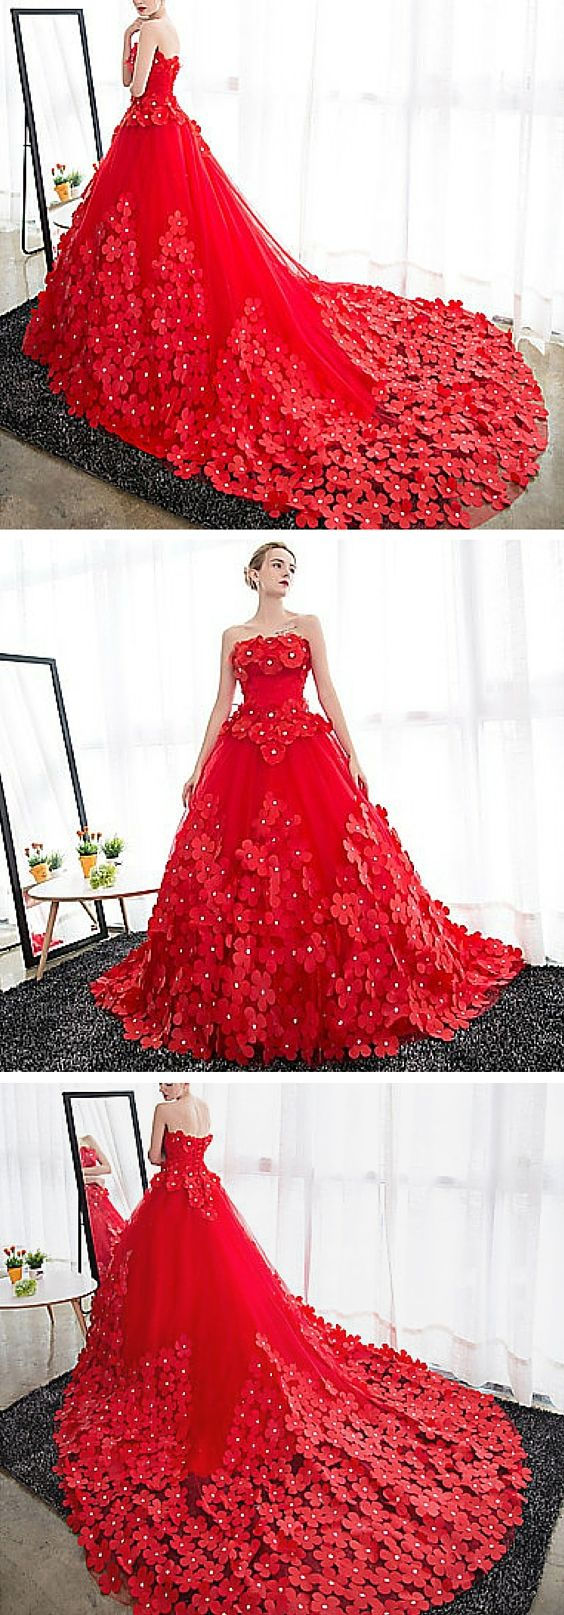 Strapless floral embellished ruby tulle wedding dress. This dramatic gown is surprisingly affordable! It's an amazing choice for the bride who doesn't want to go for a typical white wedding dress. Hello, color! That red is bold and chic. The cathedral train really completes the look.